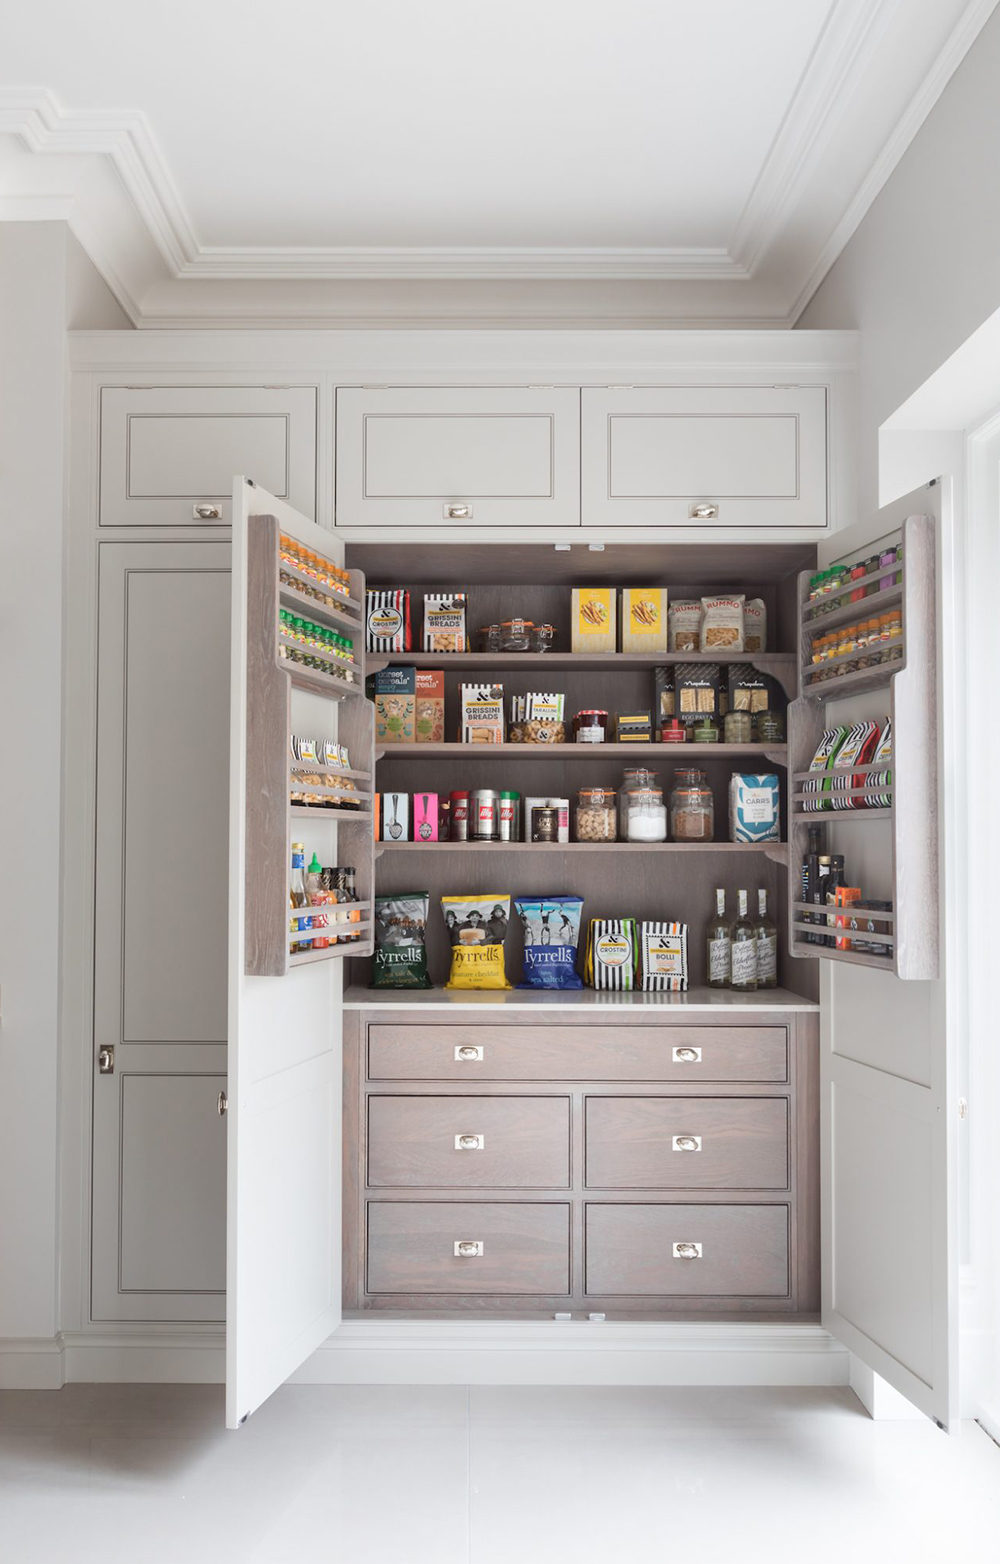 with a ideas and zdif kitchen maximize space pantry awesome storage pantrys for concept of custom pantries pict